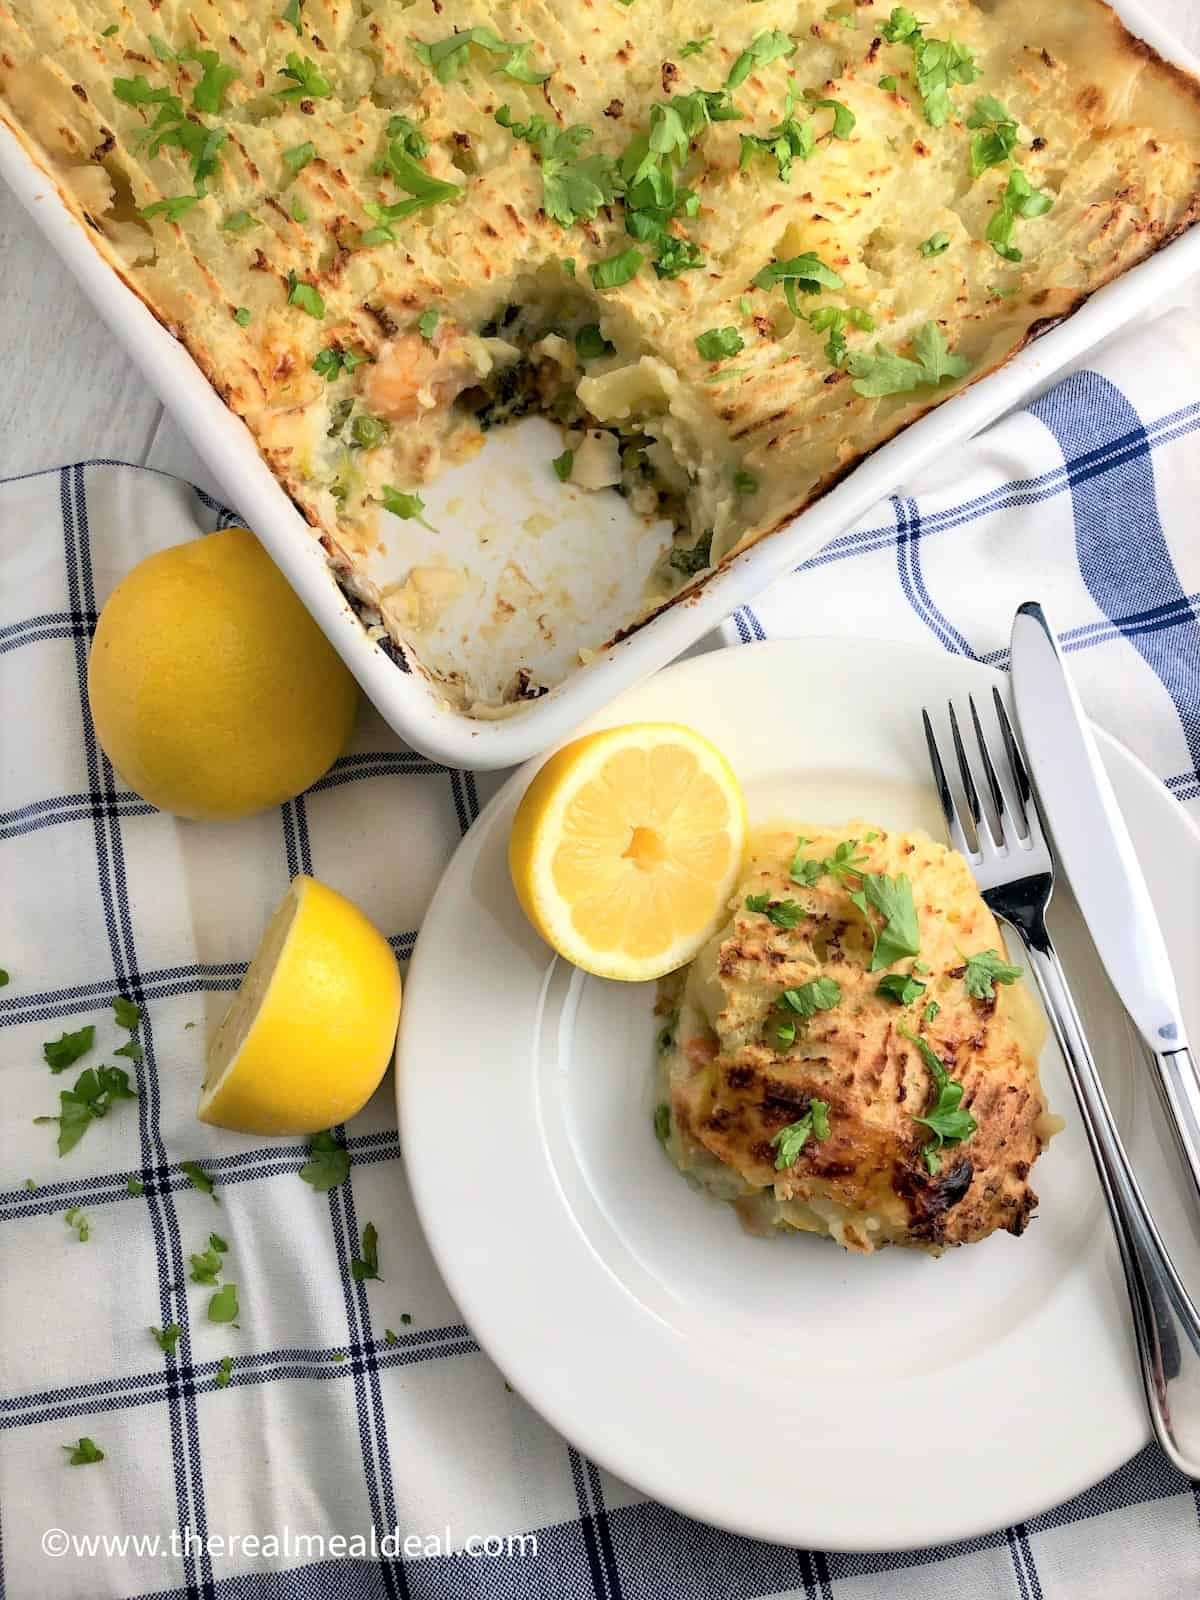 baked fish pie with leeks in dish with portion removed to plate at side served with lemon halves and fresh parsley leaves